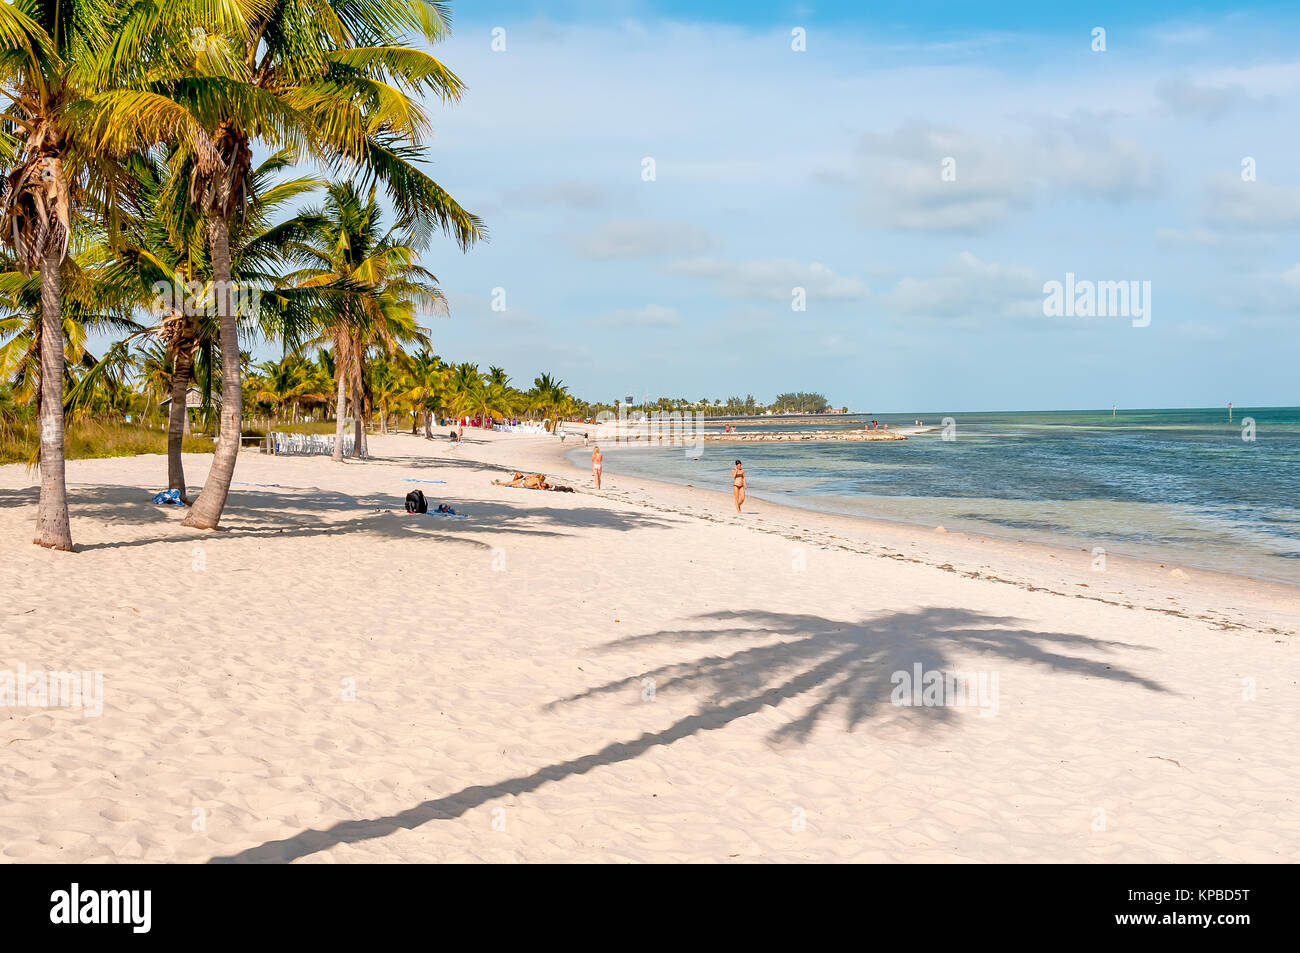 White sand Smathers Beach with palm trees, Key West, Florida - Stock Image